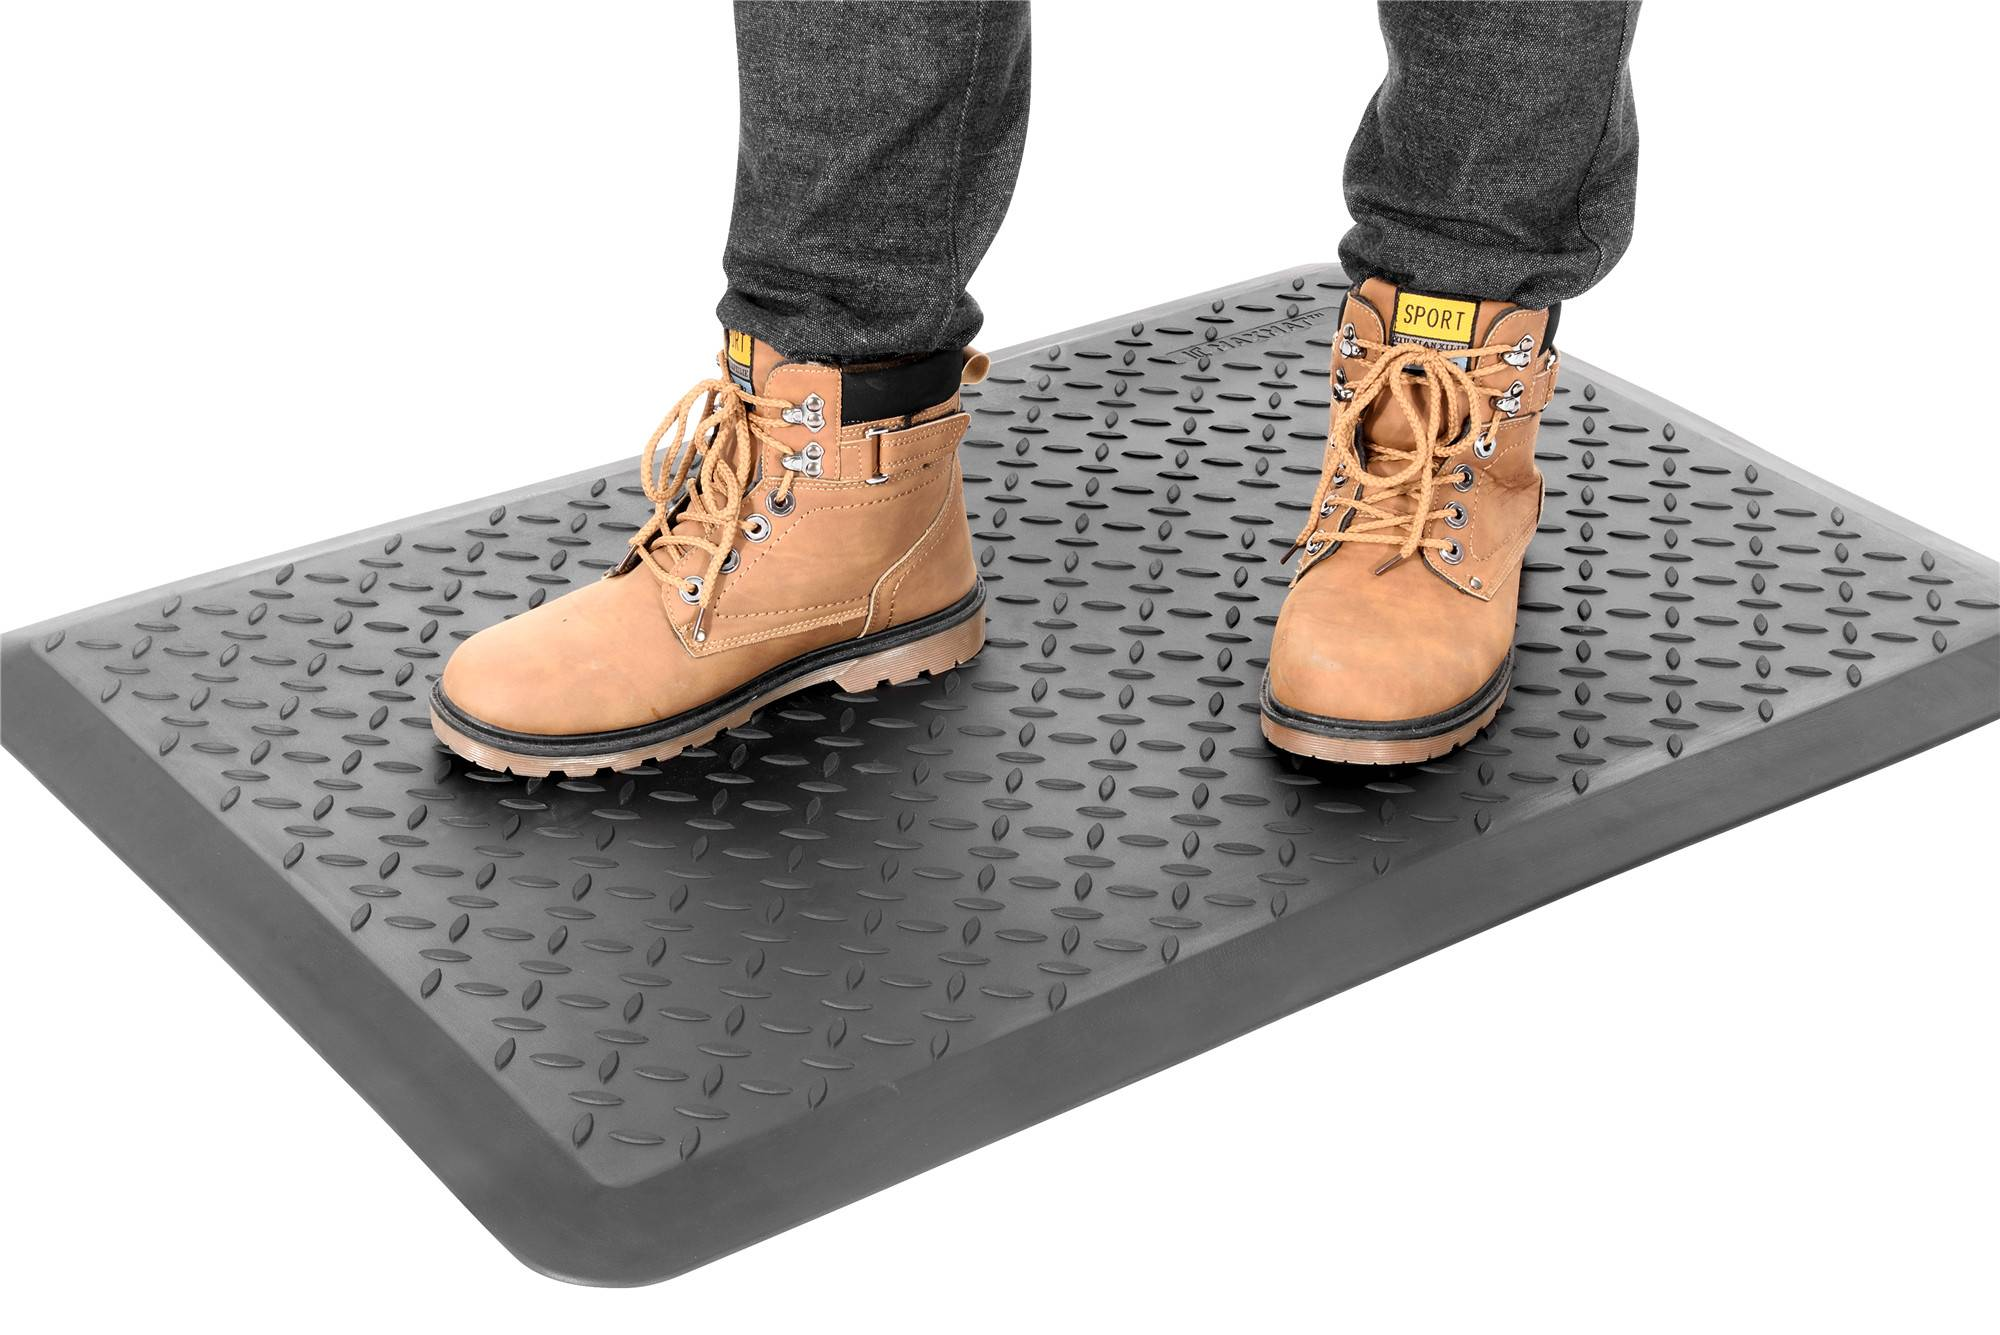 100% anti-fatigue mat kitchen mat standing mat